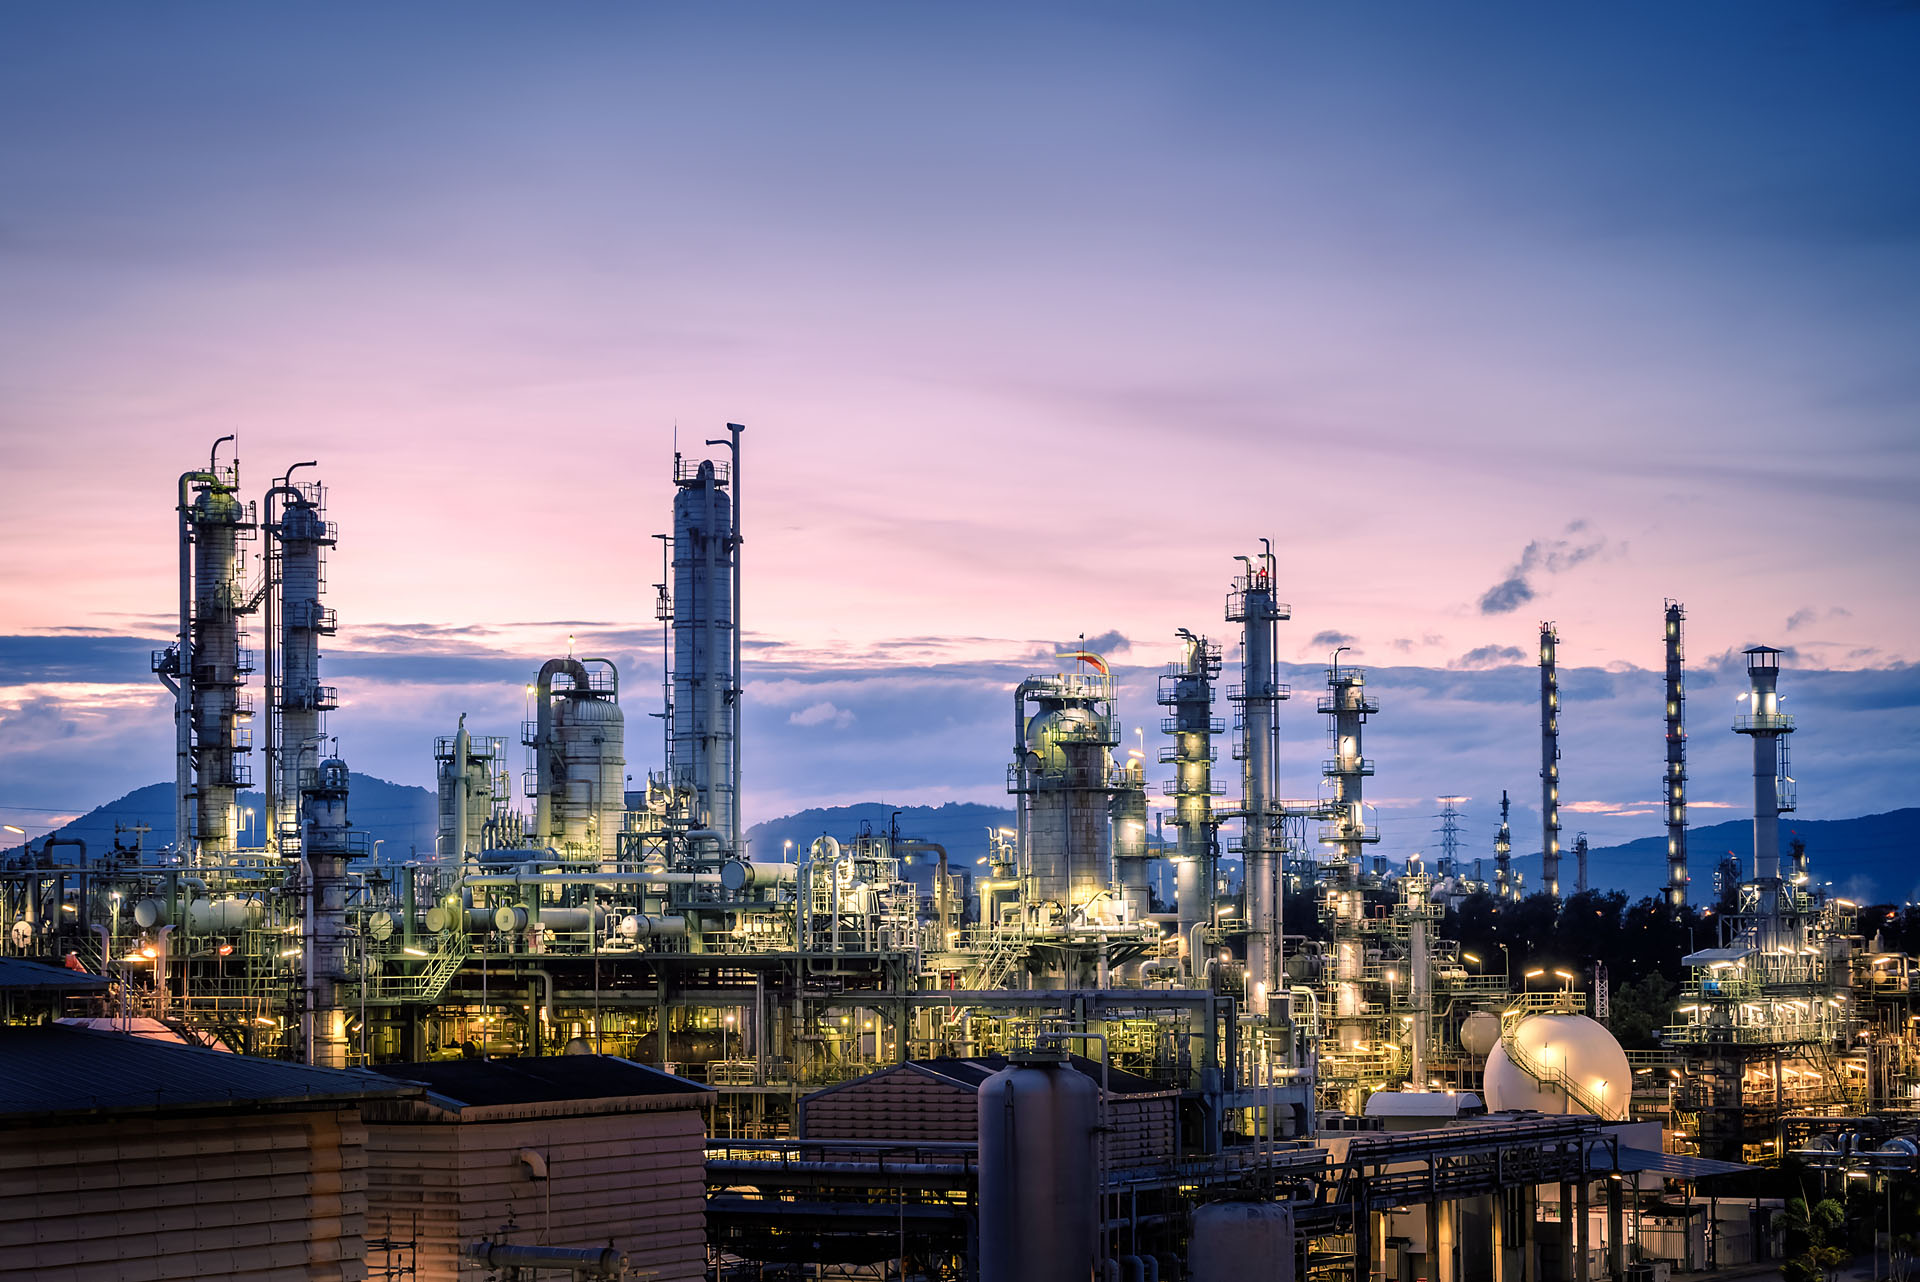 Manufacturing Of Petroleum Industrial Plant On Sky Twilight Back